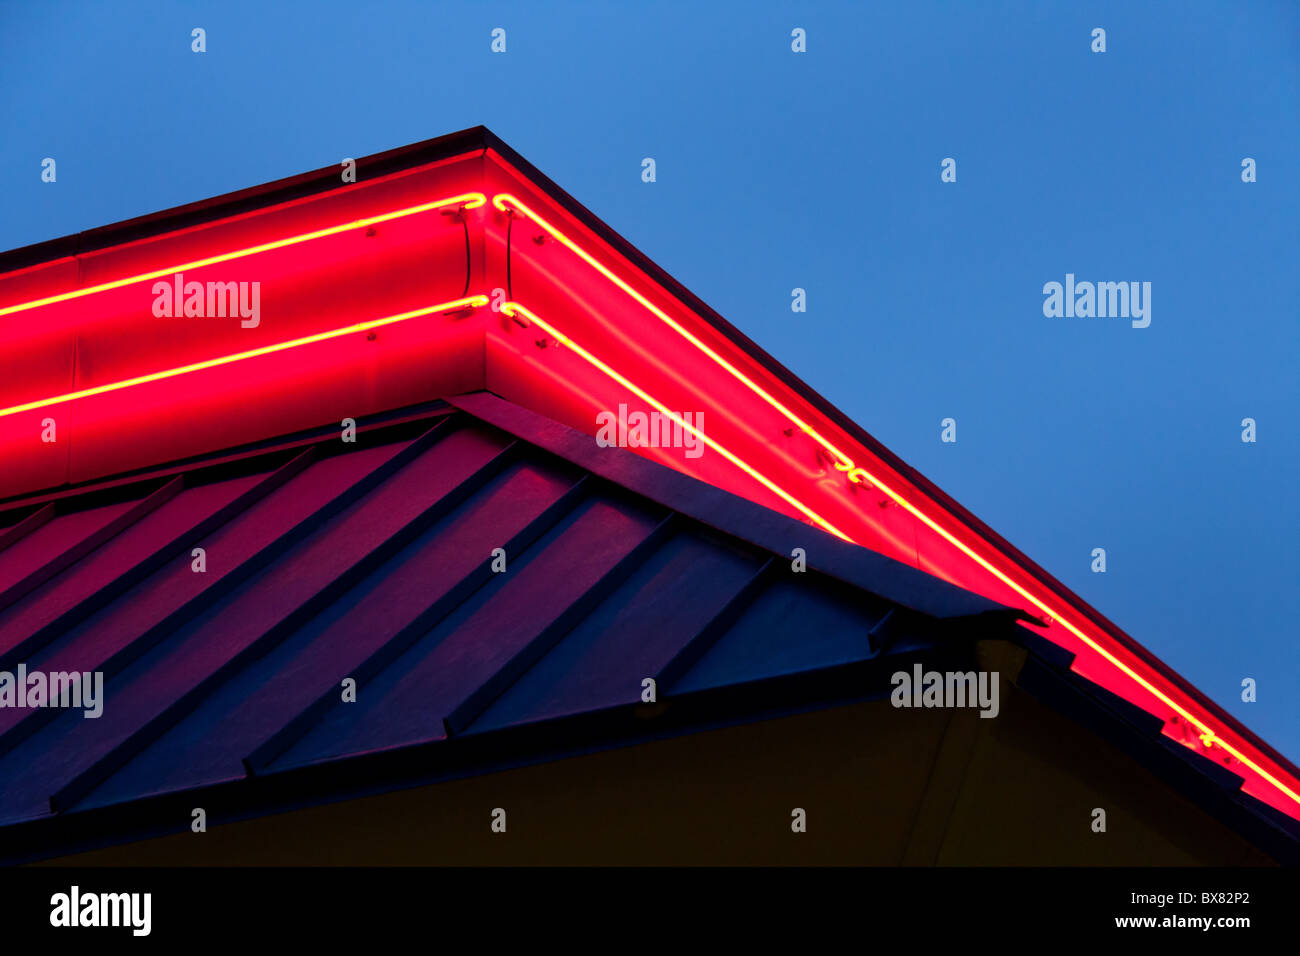 Neon lights on fast food restaurant building - Stock Image